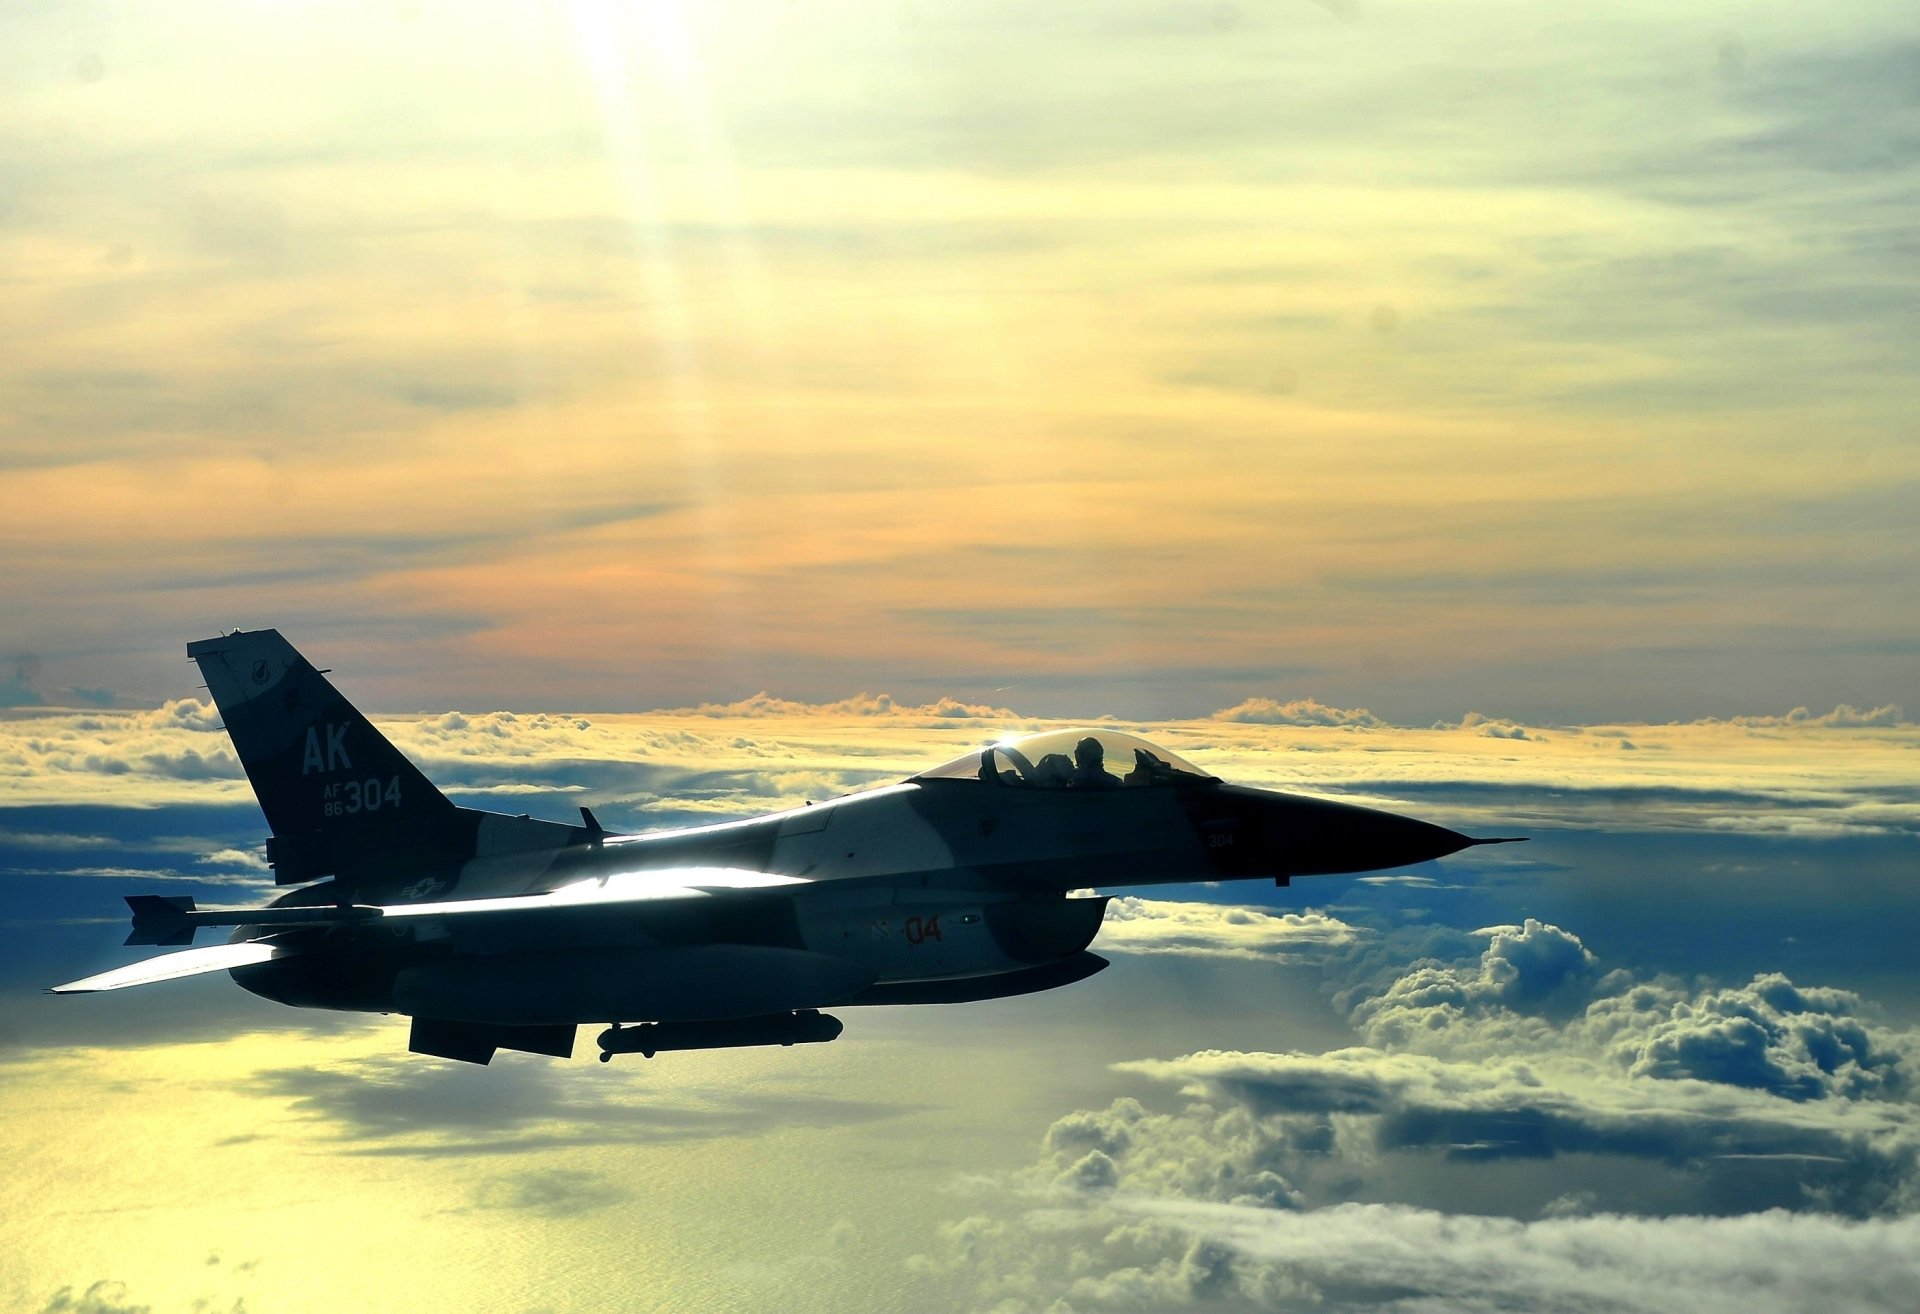 Military - General Dynamics F-16 Fighting Falcon  Military F-16 Aircraft Vehicle Cloud Sky Airplane Air Force Jet Fighter Wallpaper